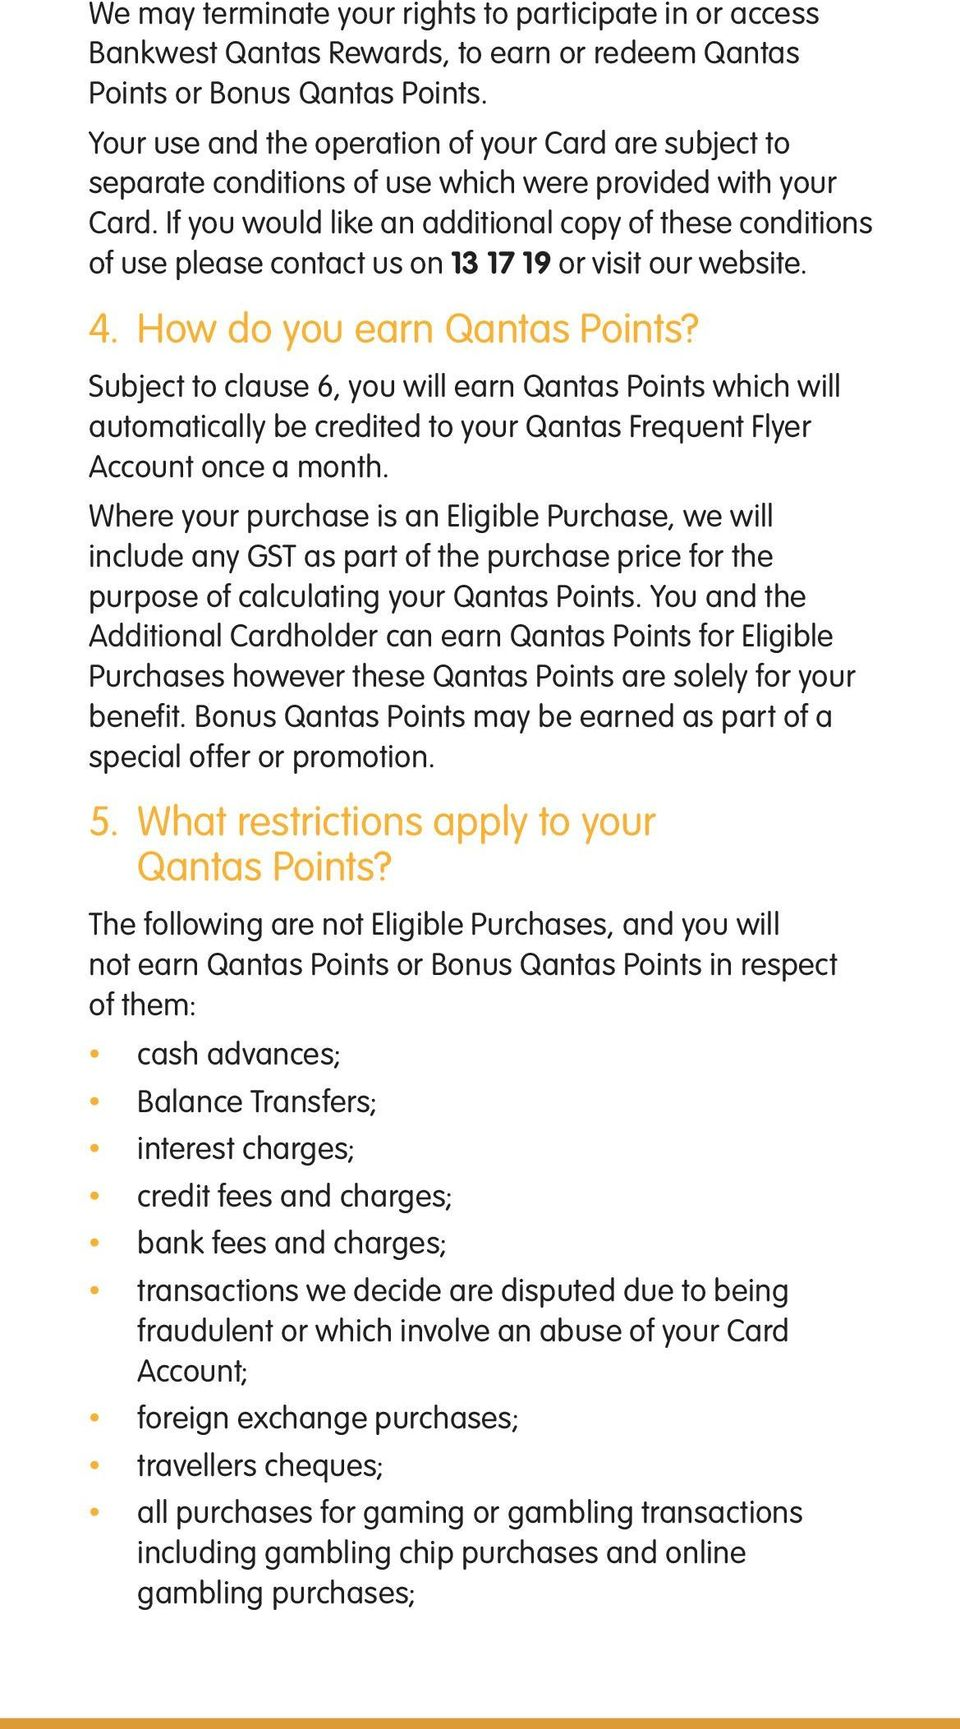 If you would like an additional copy of these conditions of use please contact us on 13 17 19 or visit our website. 4. How do you earn Qantas Points?